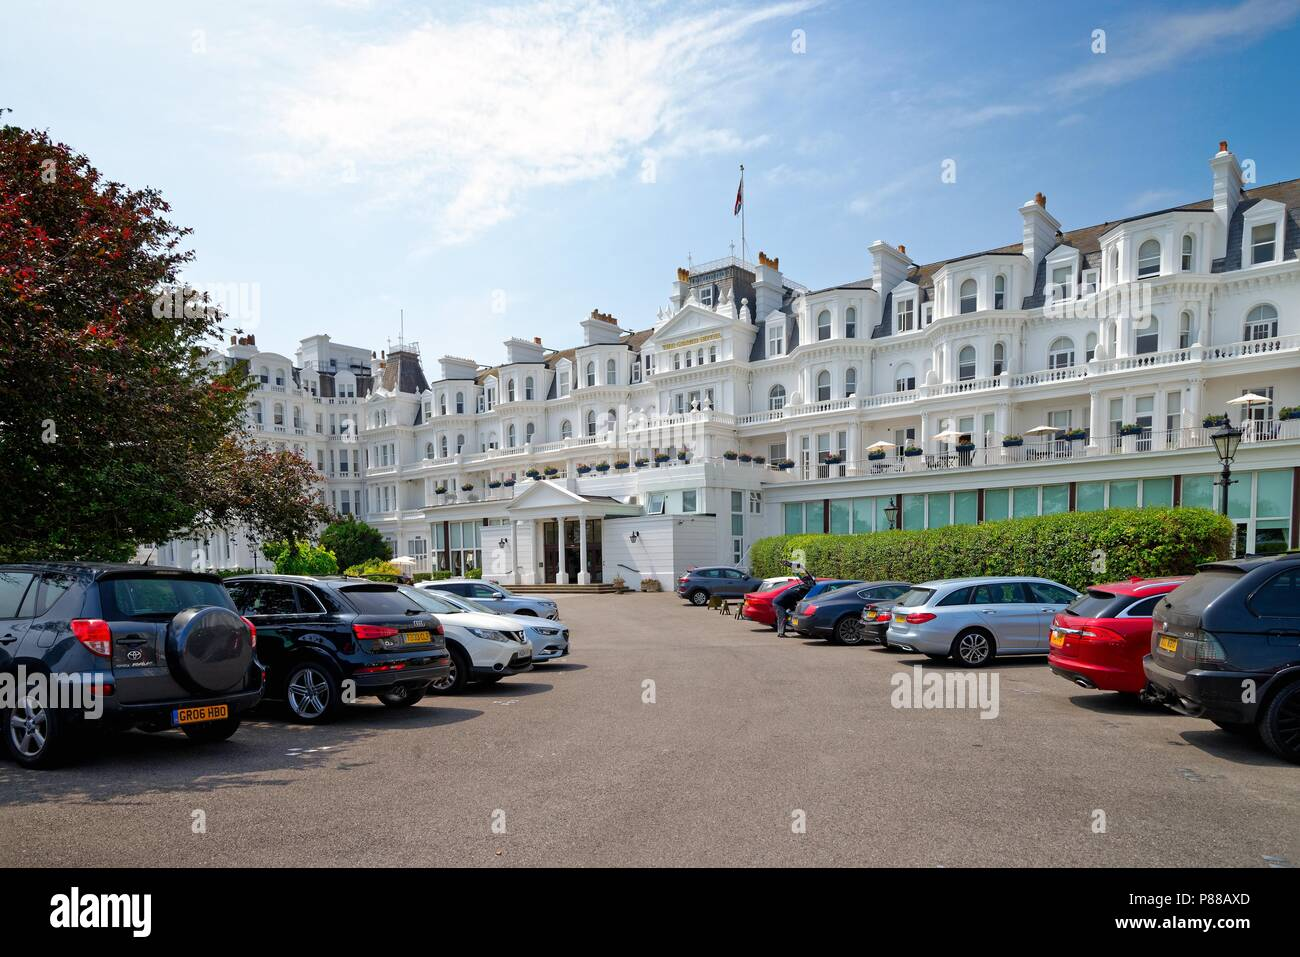 Exterior of The Grand Hotel on the seafront at Eastbourne